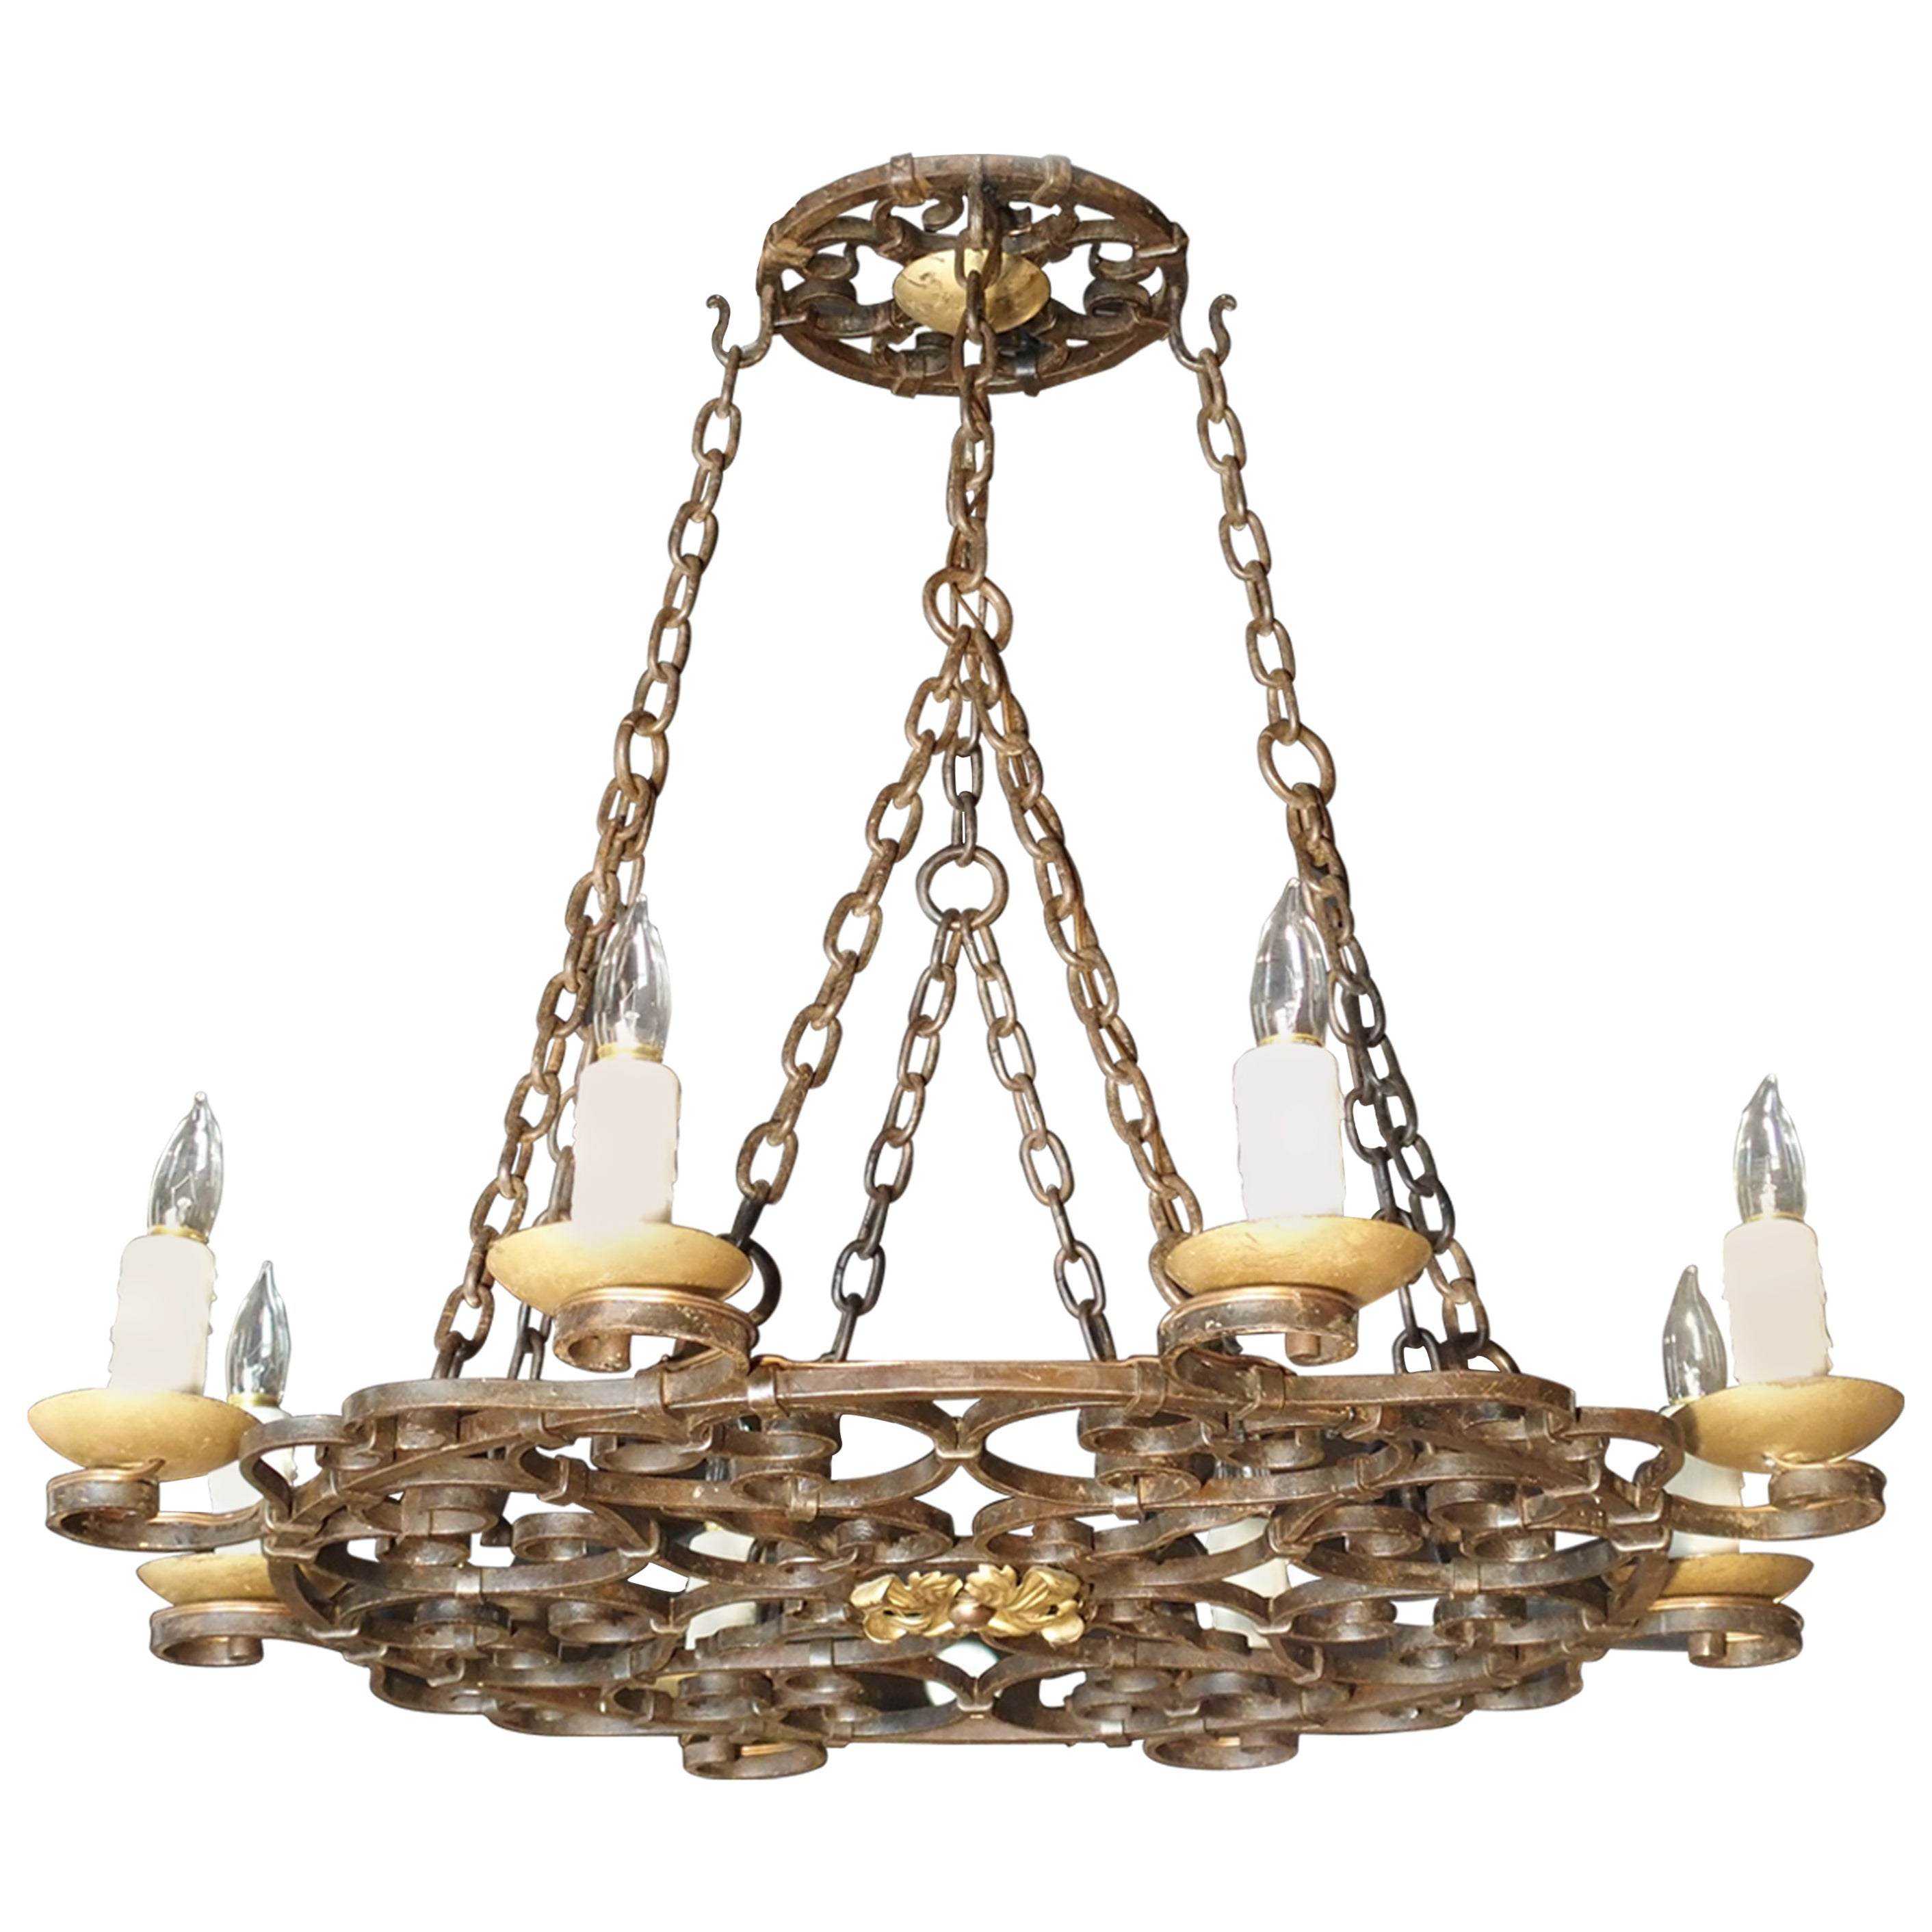 Early 20th Century Eight-Light Iron Chandelier from France